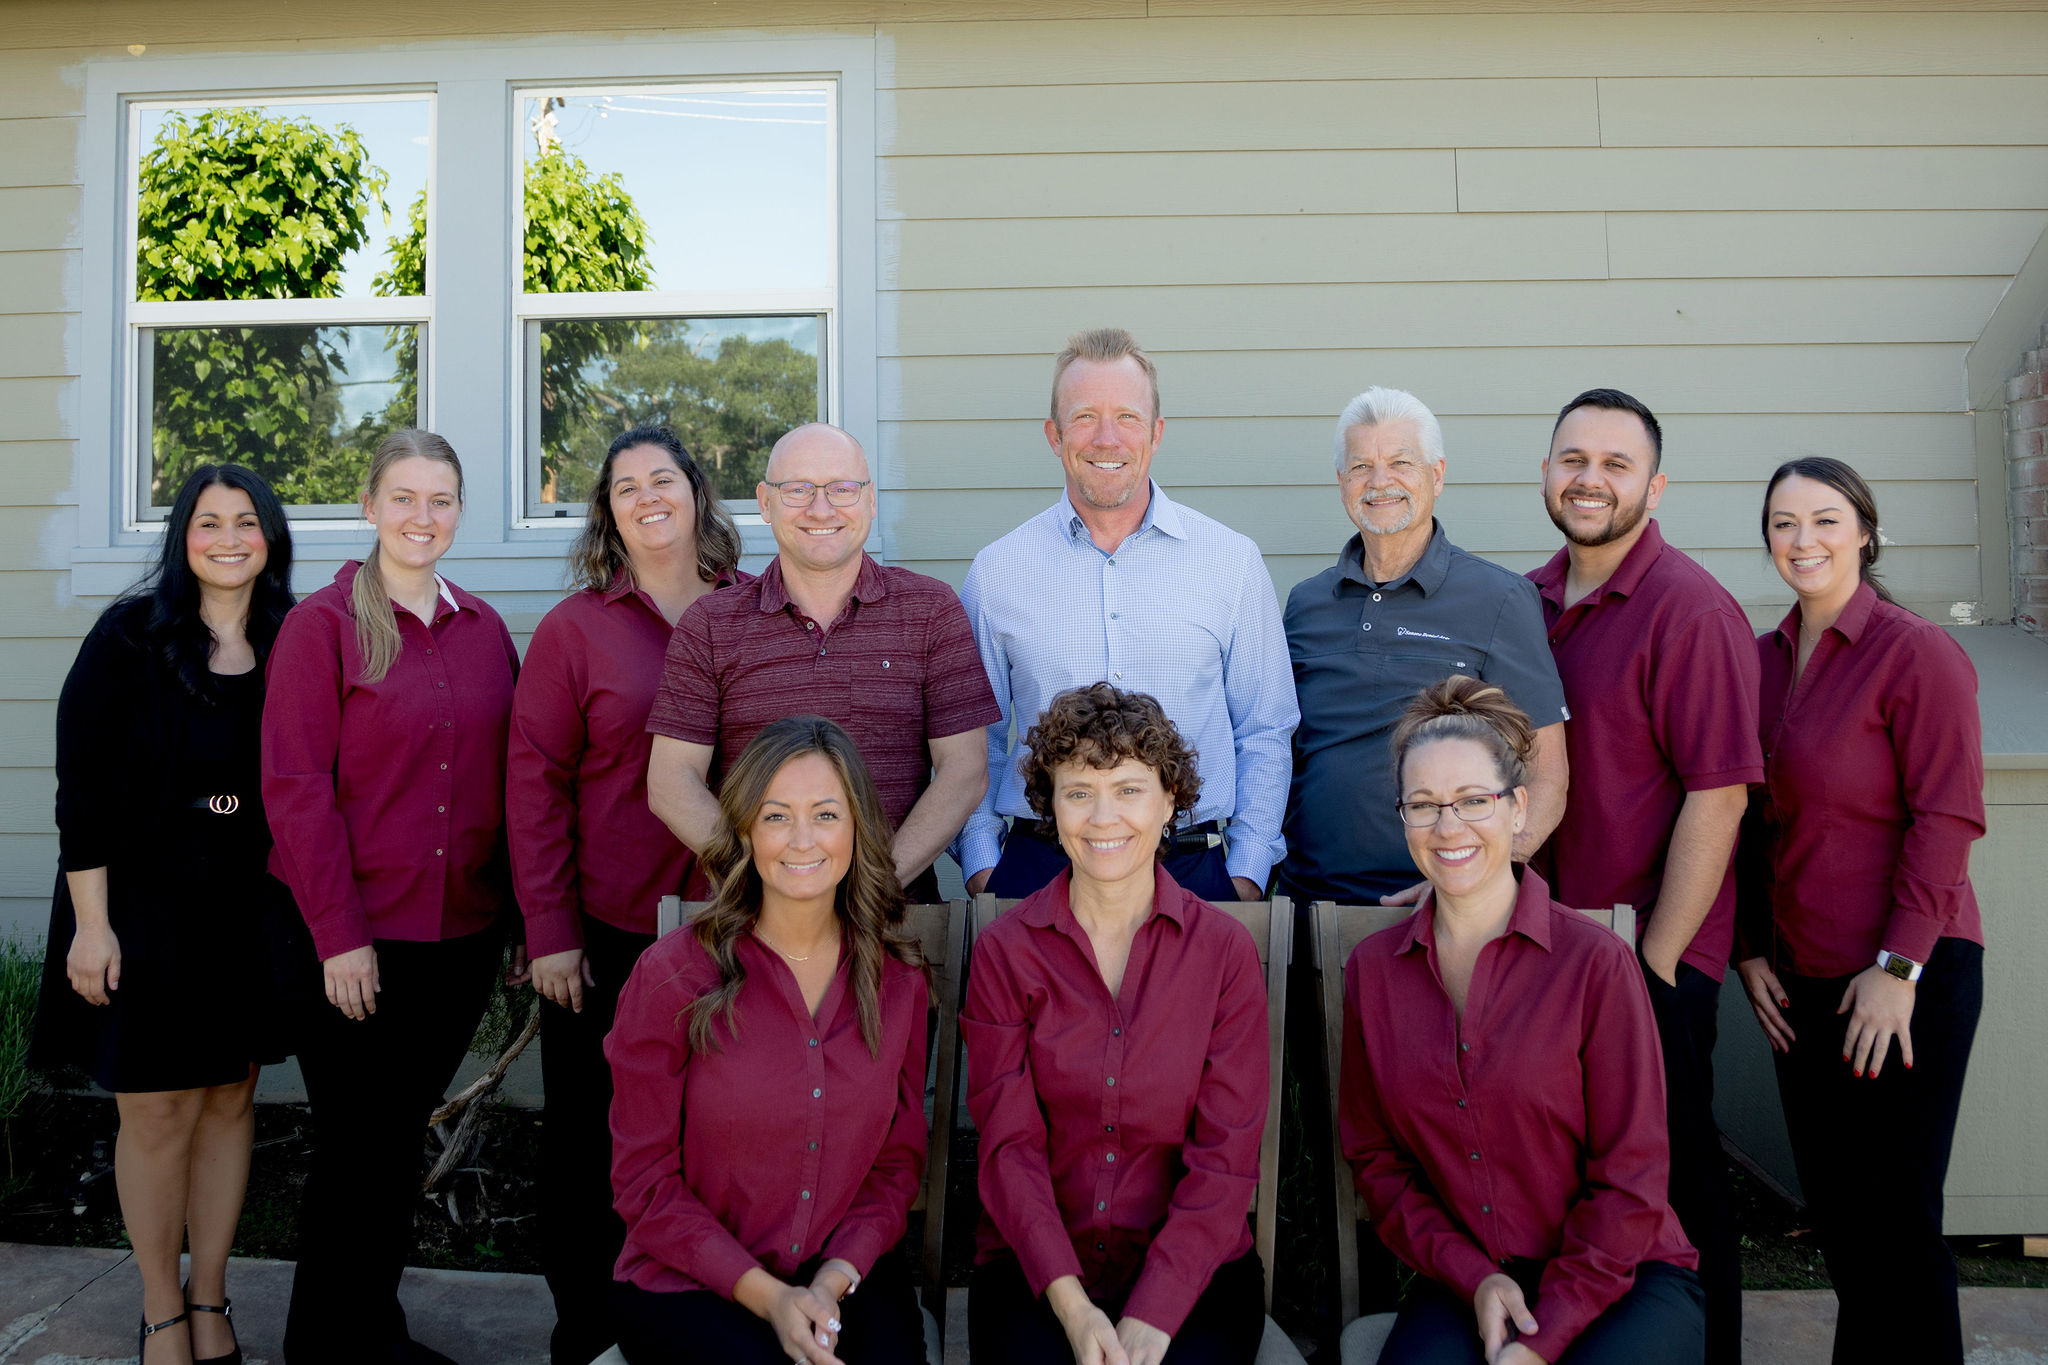 Family dentistry is a one-stop advantage for the entire family.